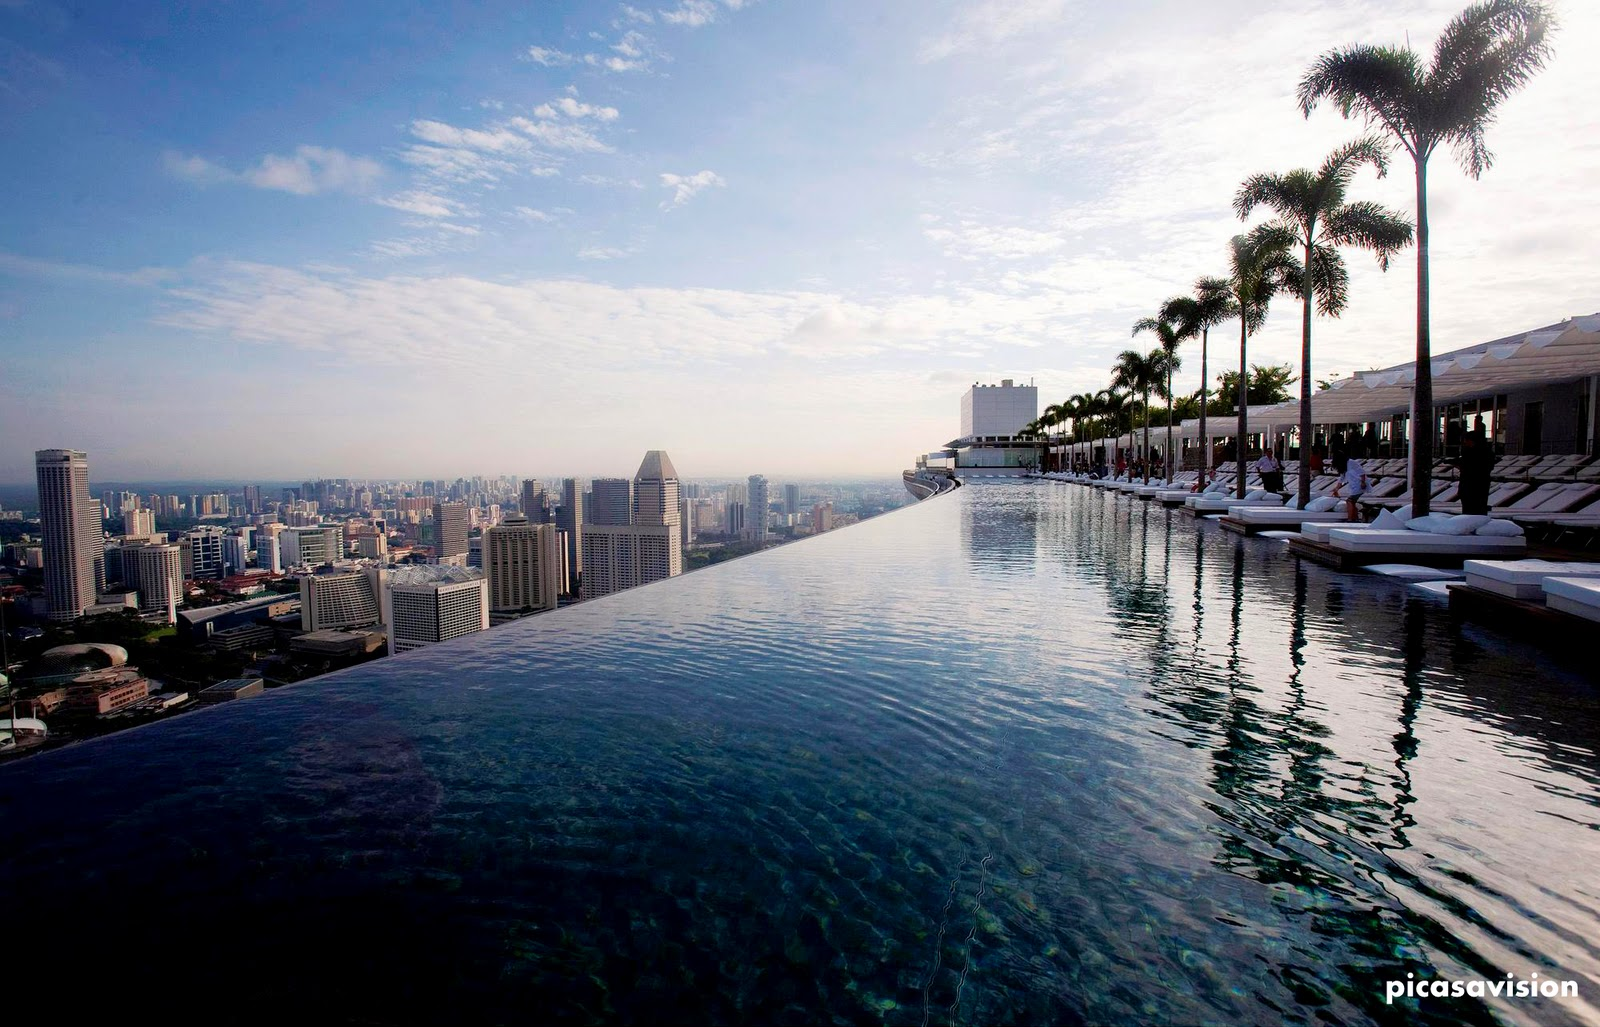 Picasa vision swimming pool on 55th floor marina bay - Rooftop swimming pool in singapore ...